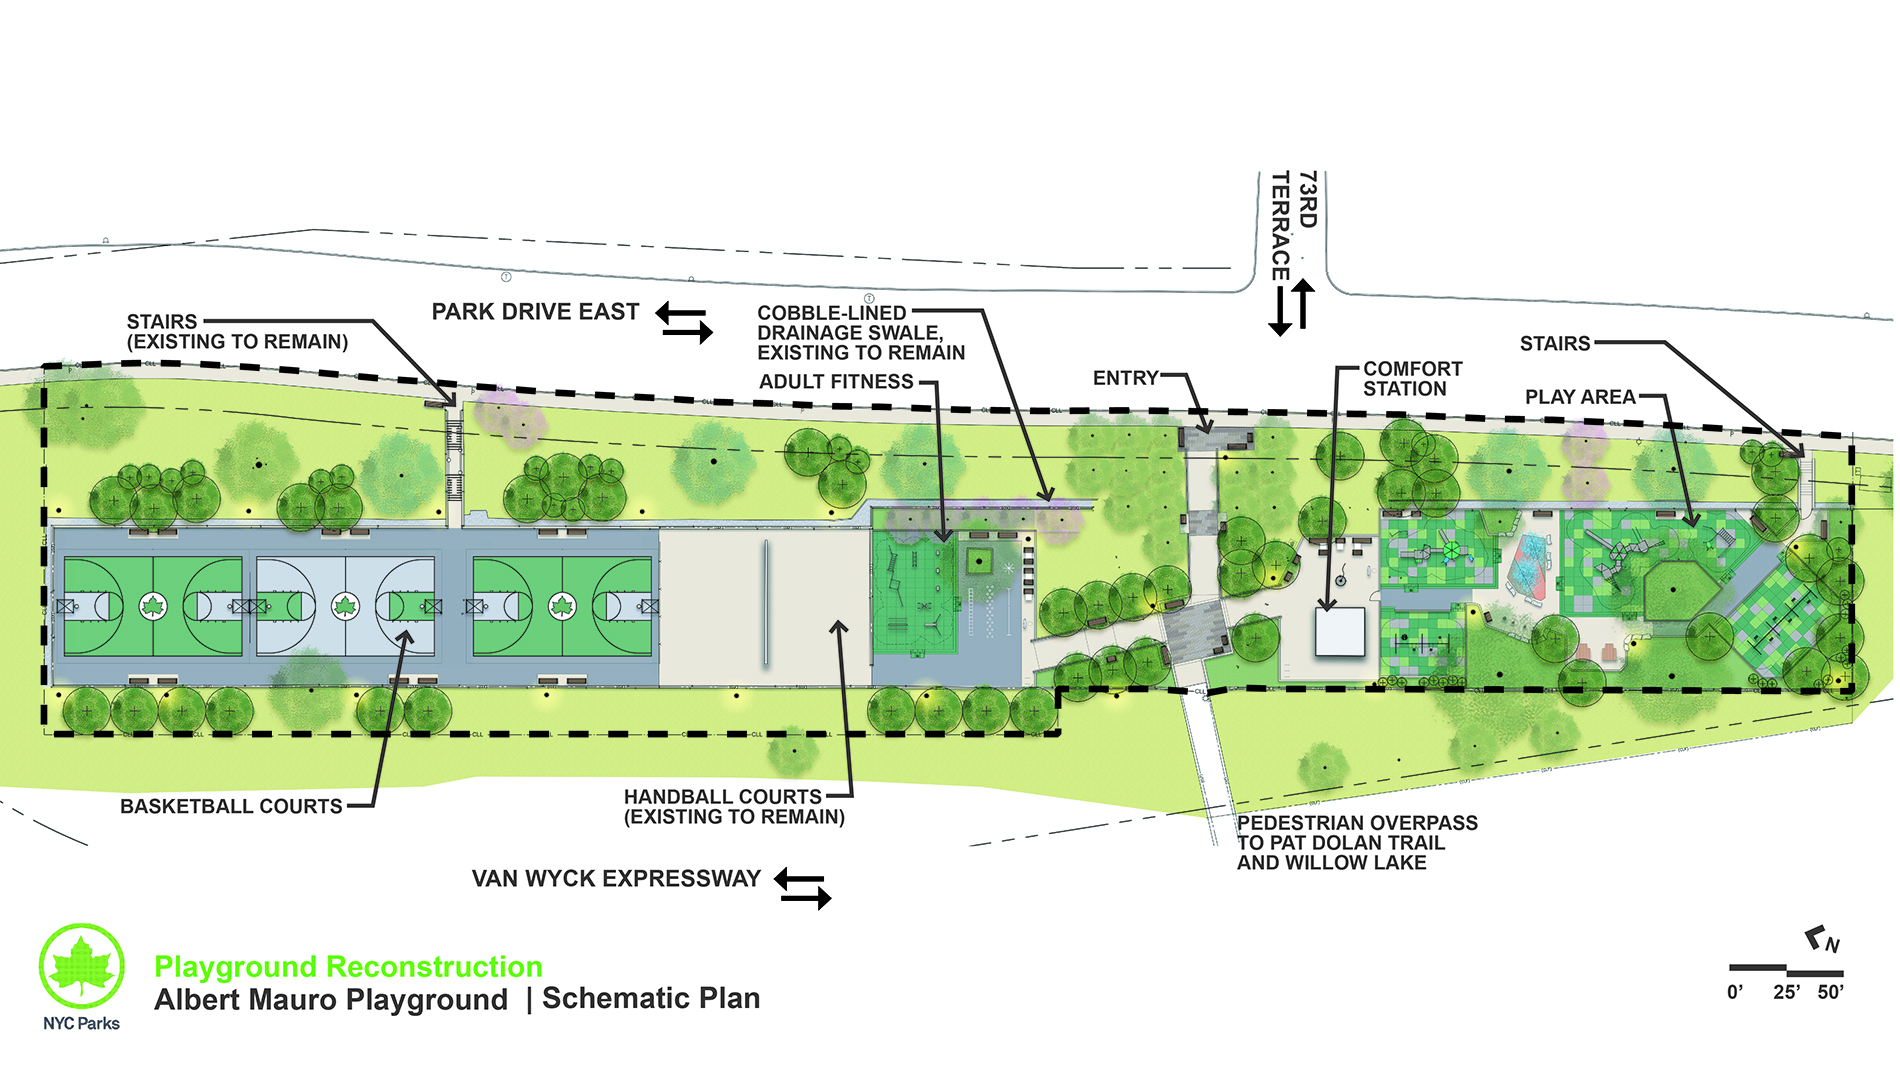 Design of Flushing Meadows Corona Park Mauro Playground Reconstruction